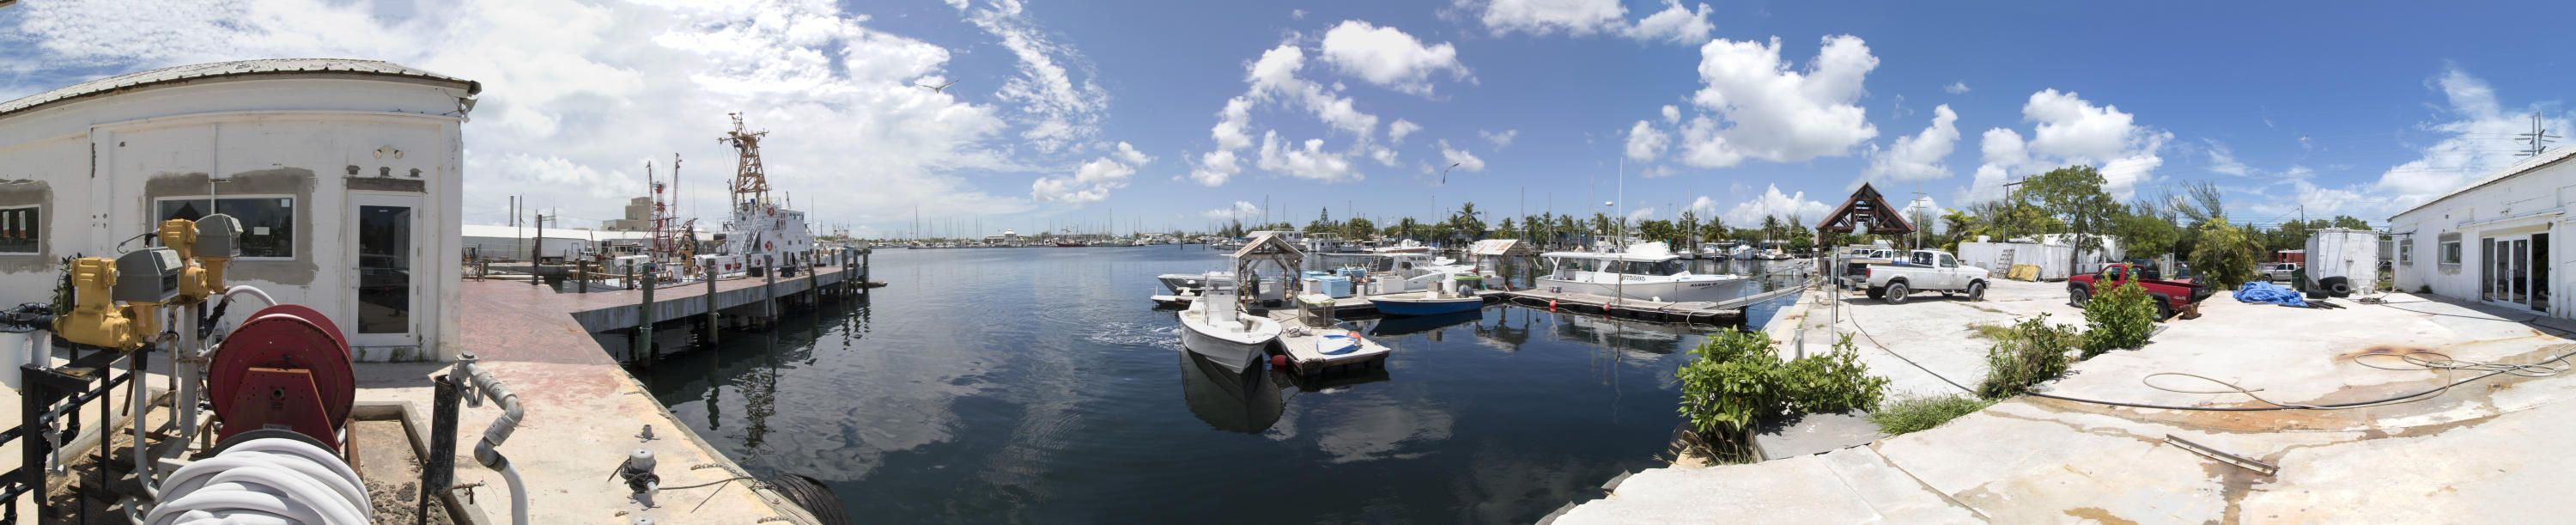 Additional photo for property listing at 6840 Front Street  Stock Island, フロリダ 33040 アメリカ合衆国